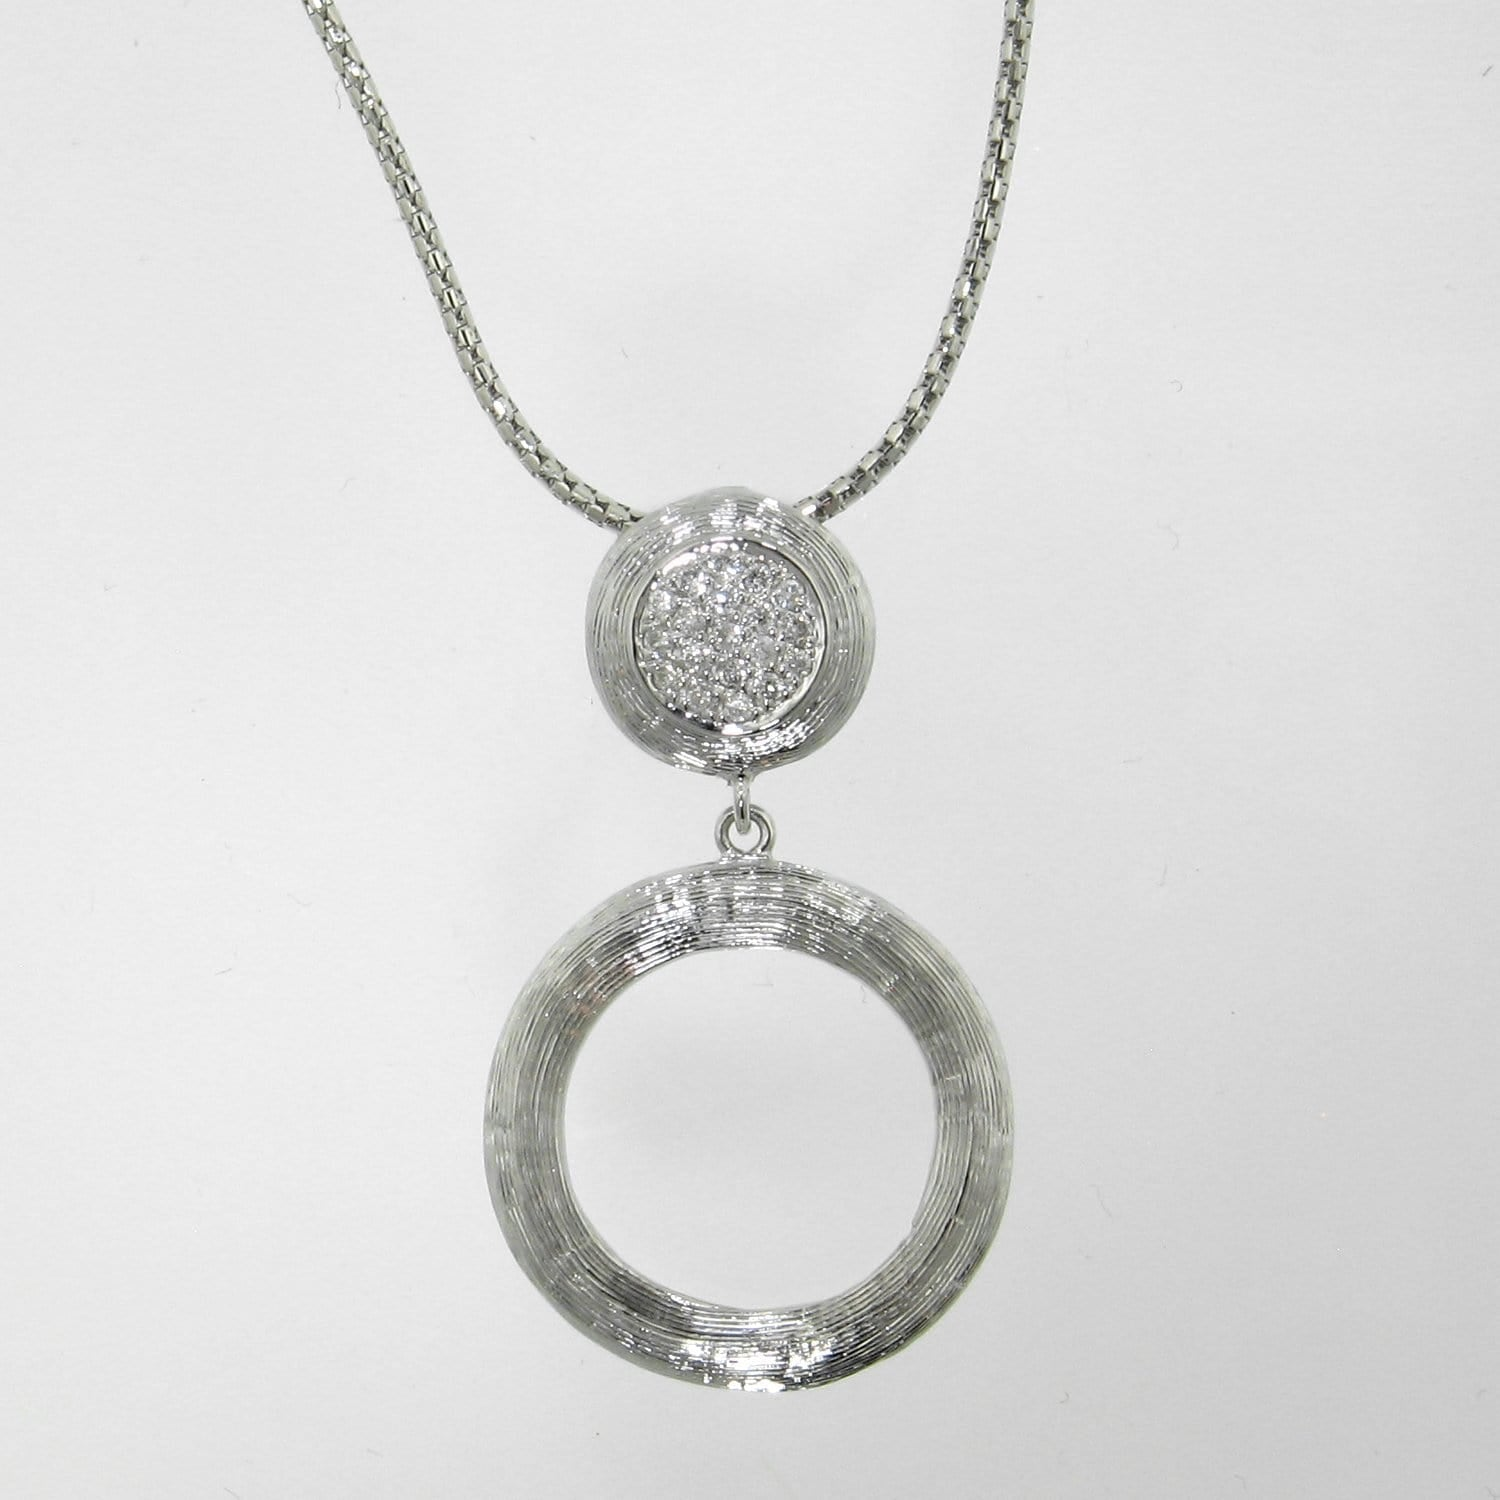 18k White Gold & Diamond Pendant - 560PD-WG-Jayne New York-Renee Taylor Gallery